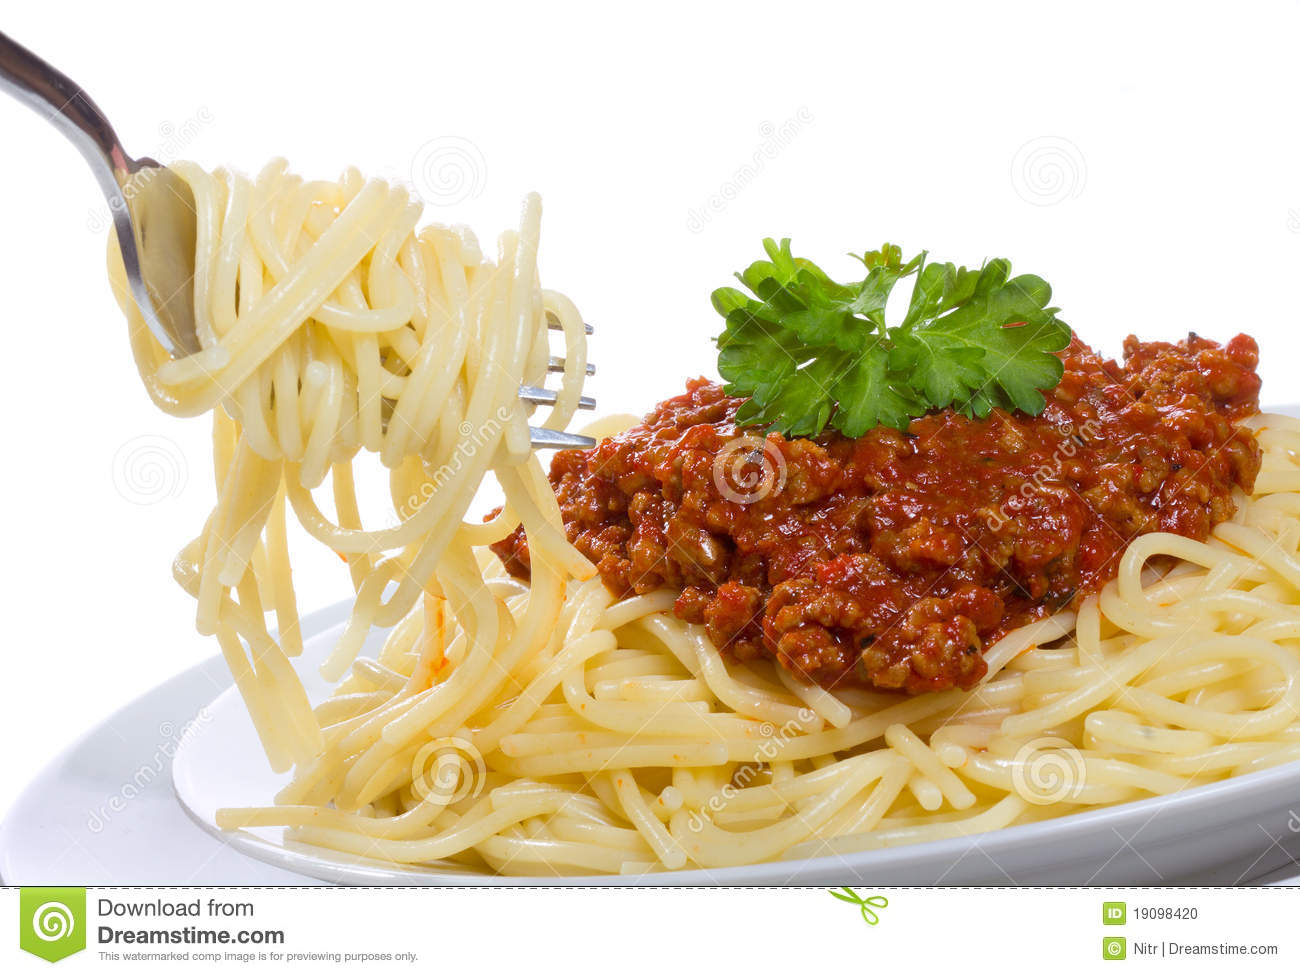 Spaghetti With Meat Sauce Stock Photo - Image: 19098420